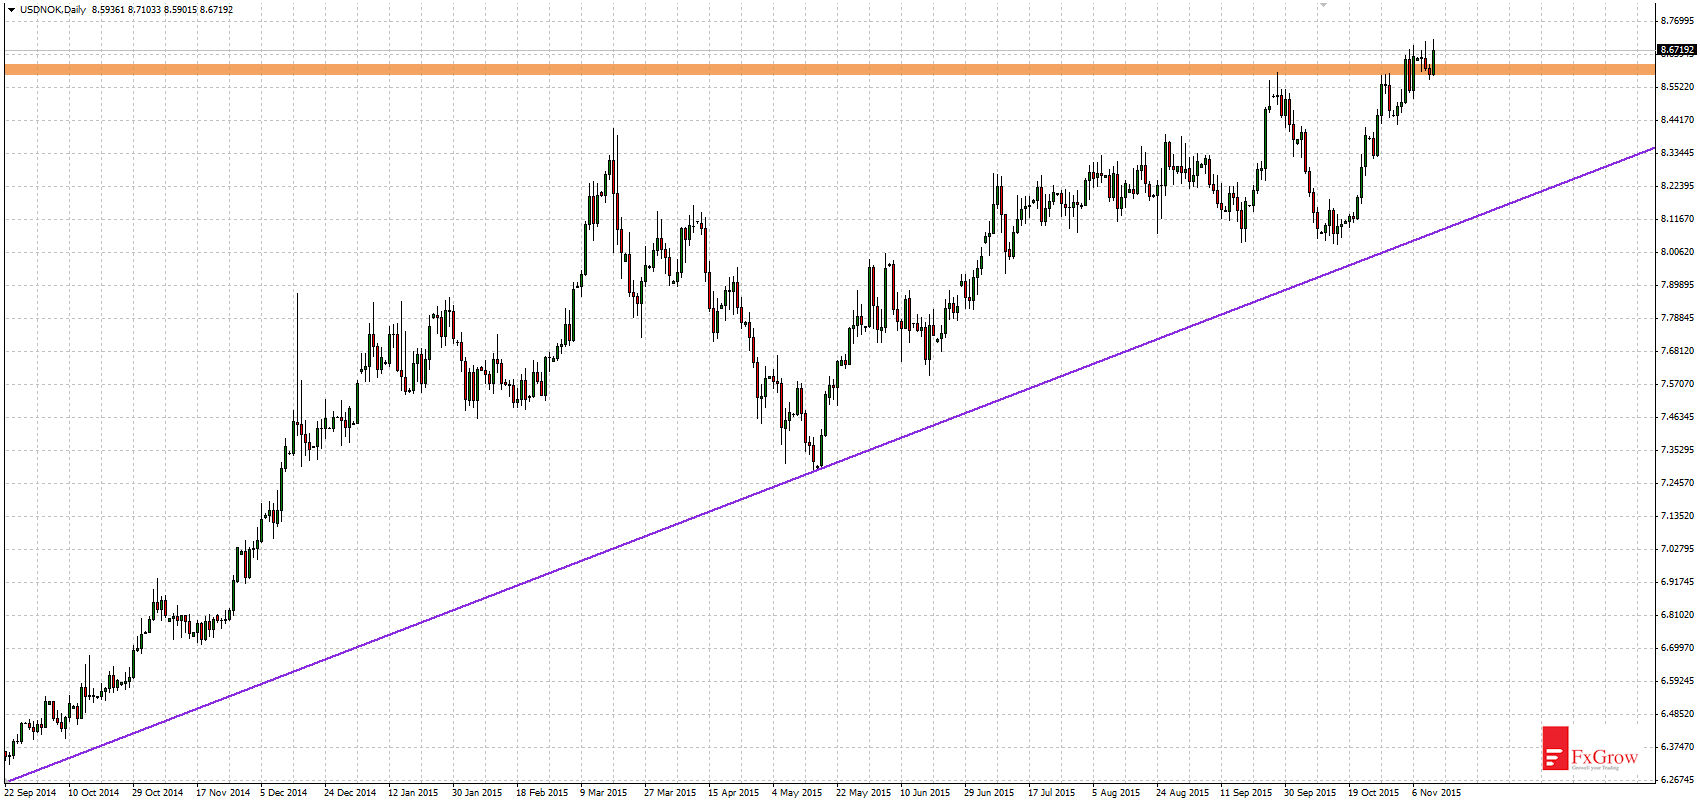 Ubs daily forex europe